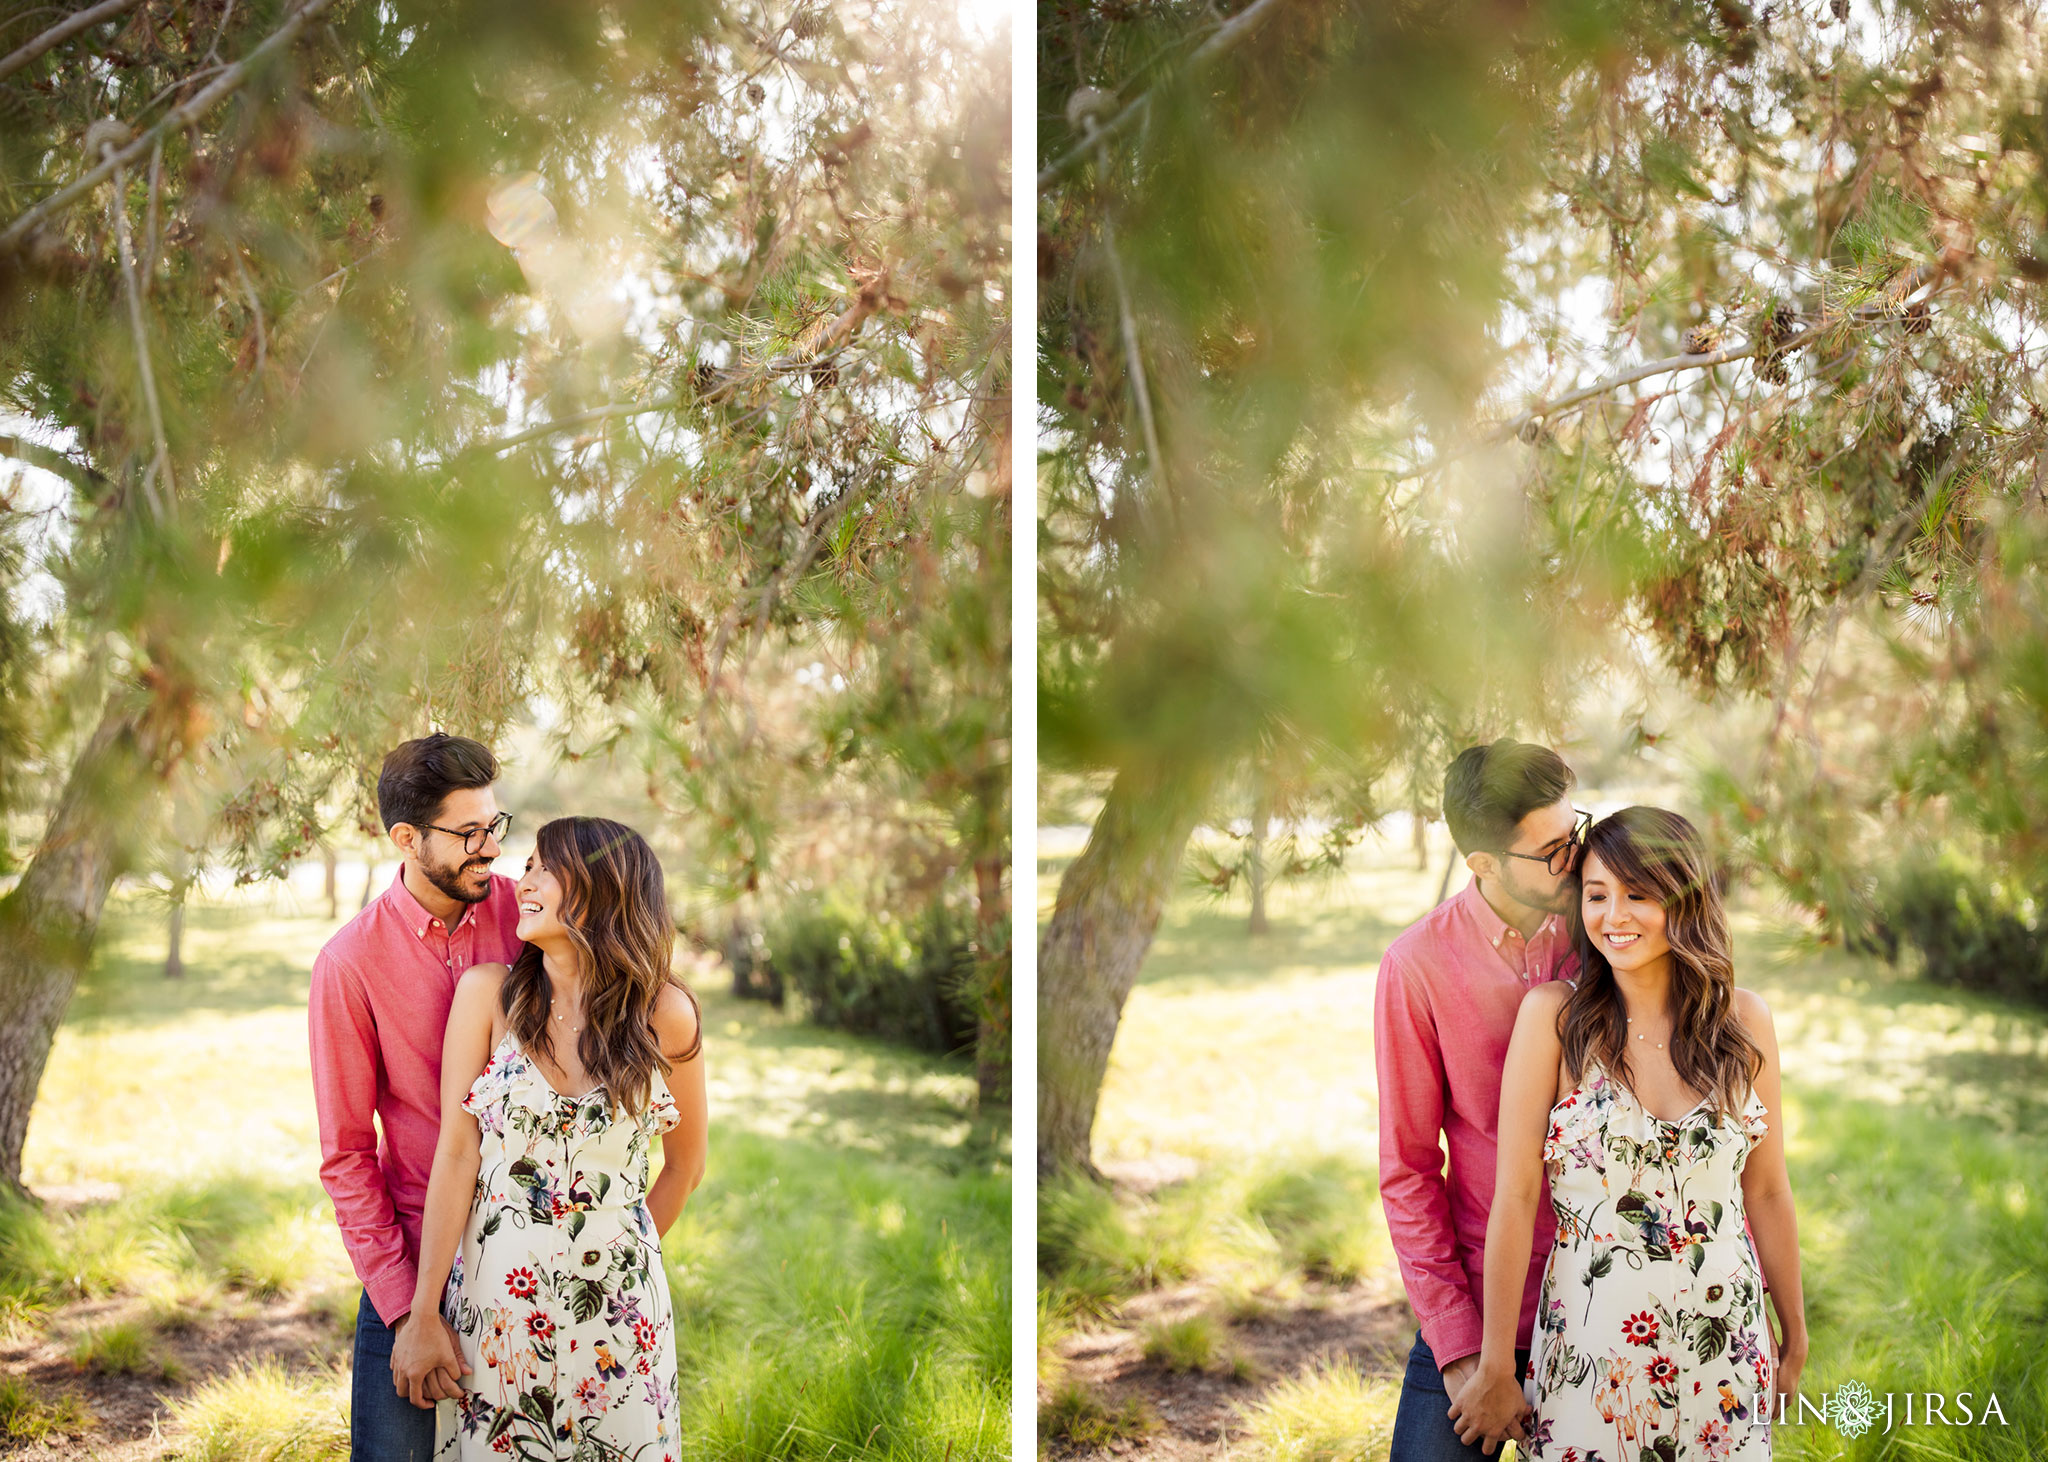 003 jeffrey open space engagement photography